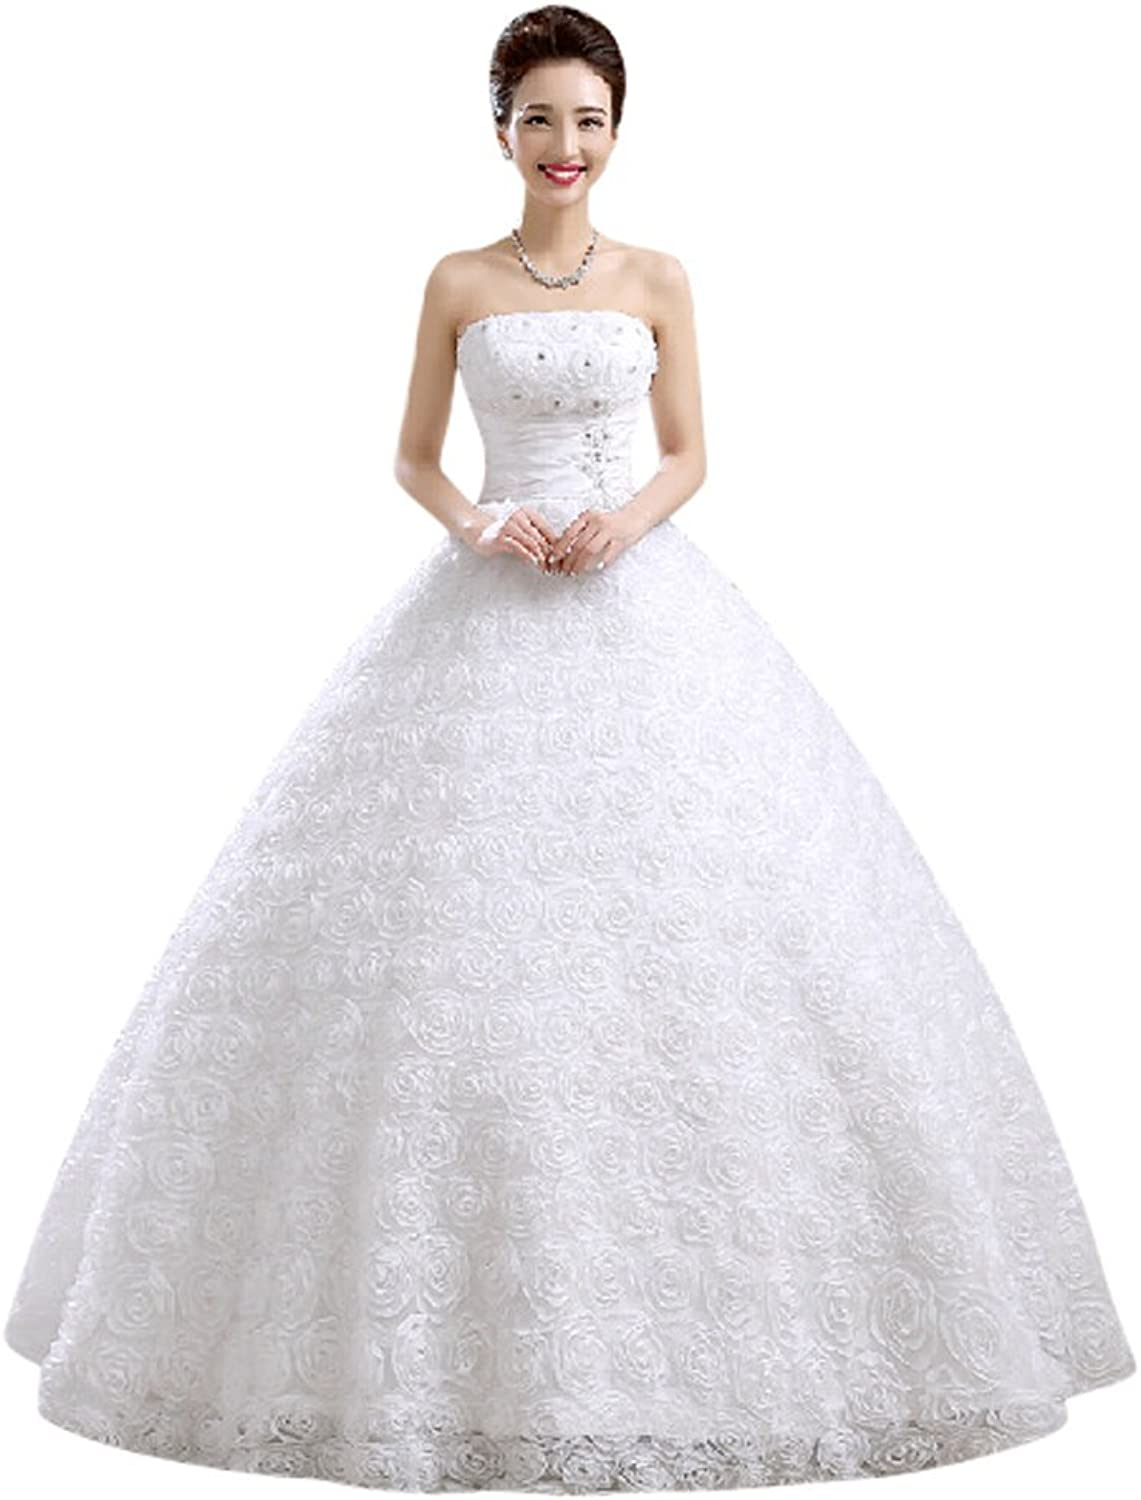 Drasawee Women's Flowers Rhinestones Corset Lace Tulle Wedding Dress Bridal Gowns